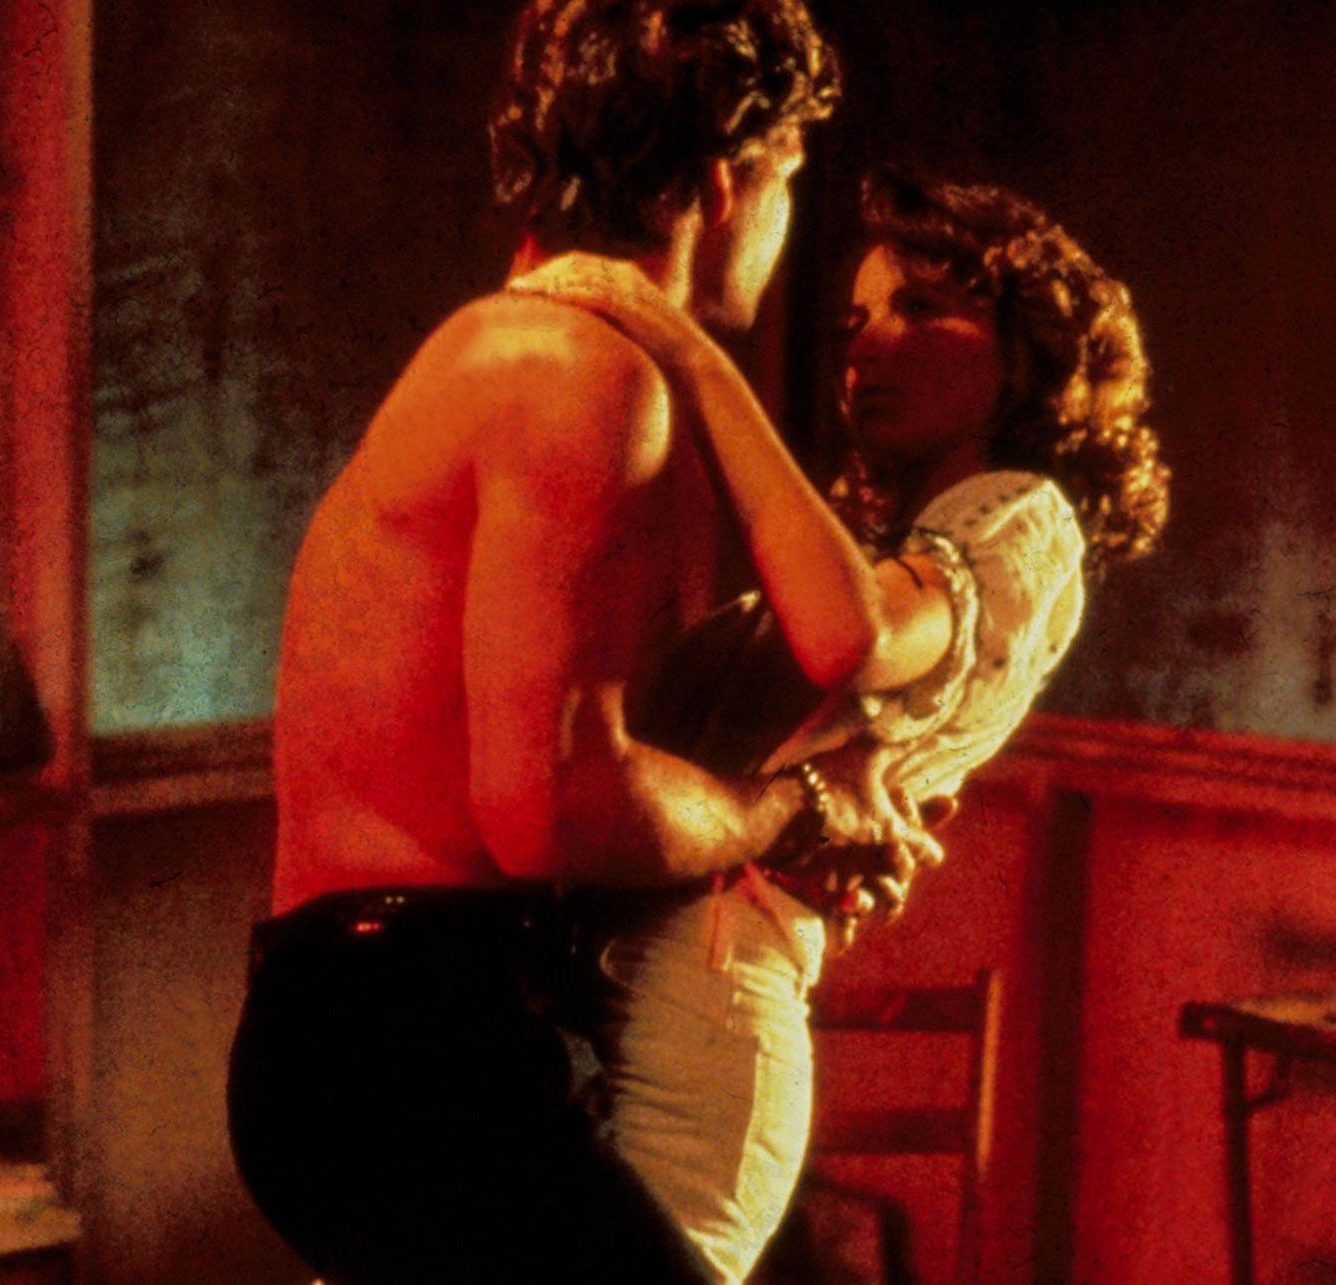 dirty dancing 2 e1617272551736 30 Things You Probably Didn't Know About Dirty Dancing